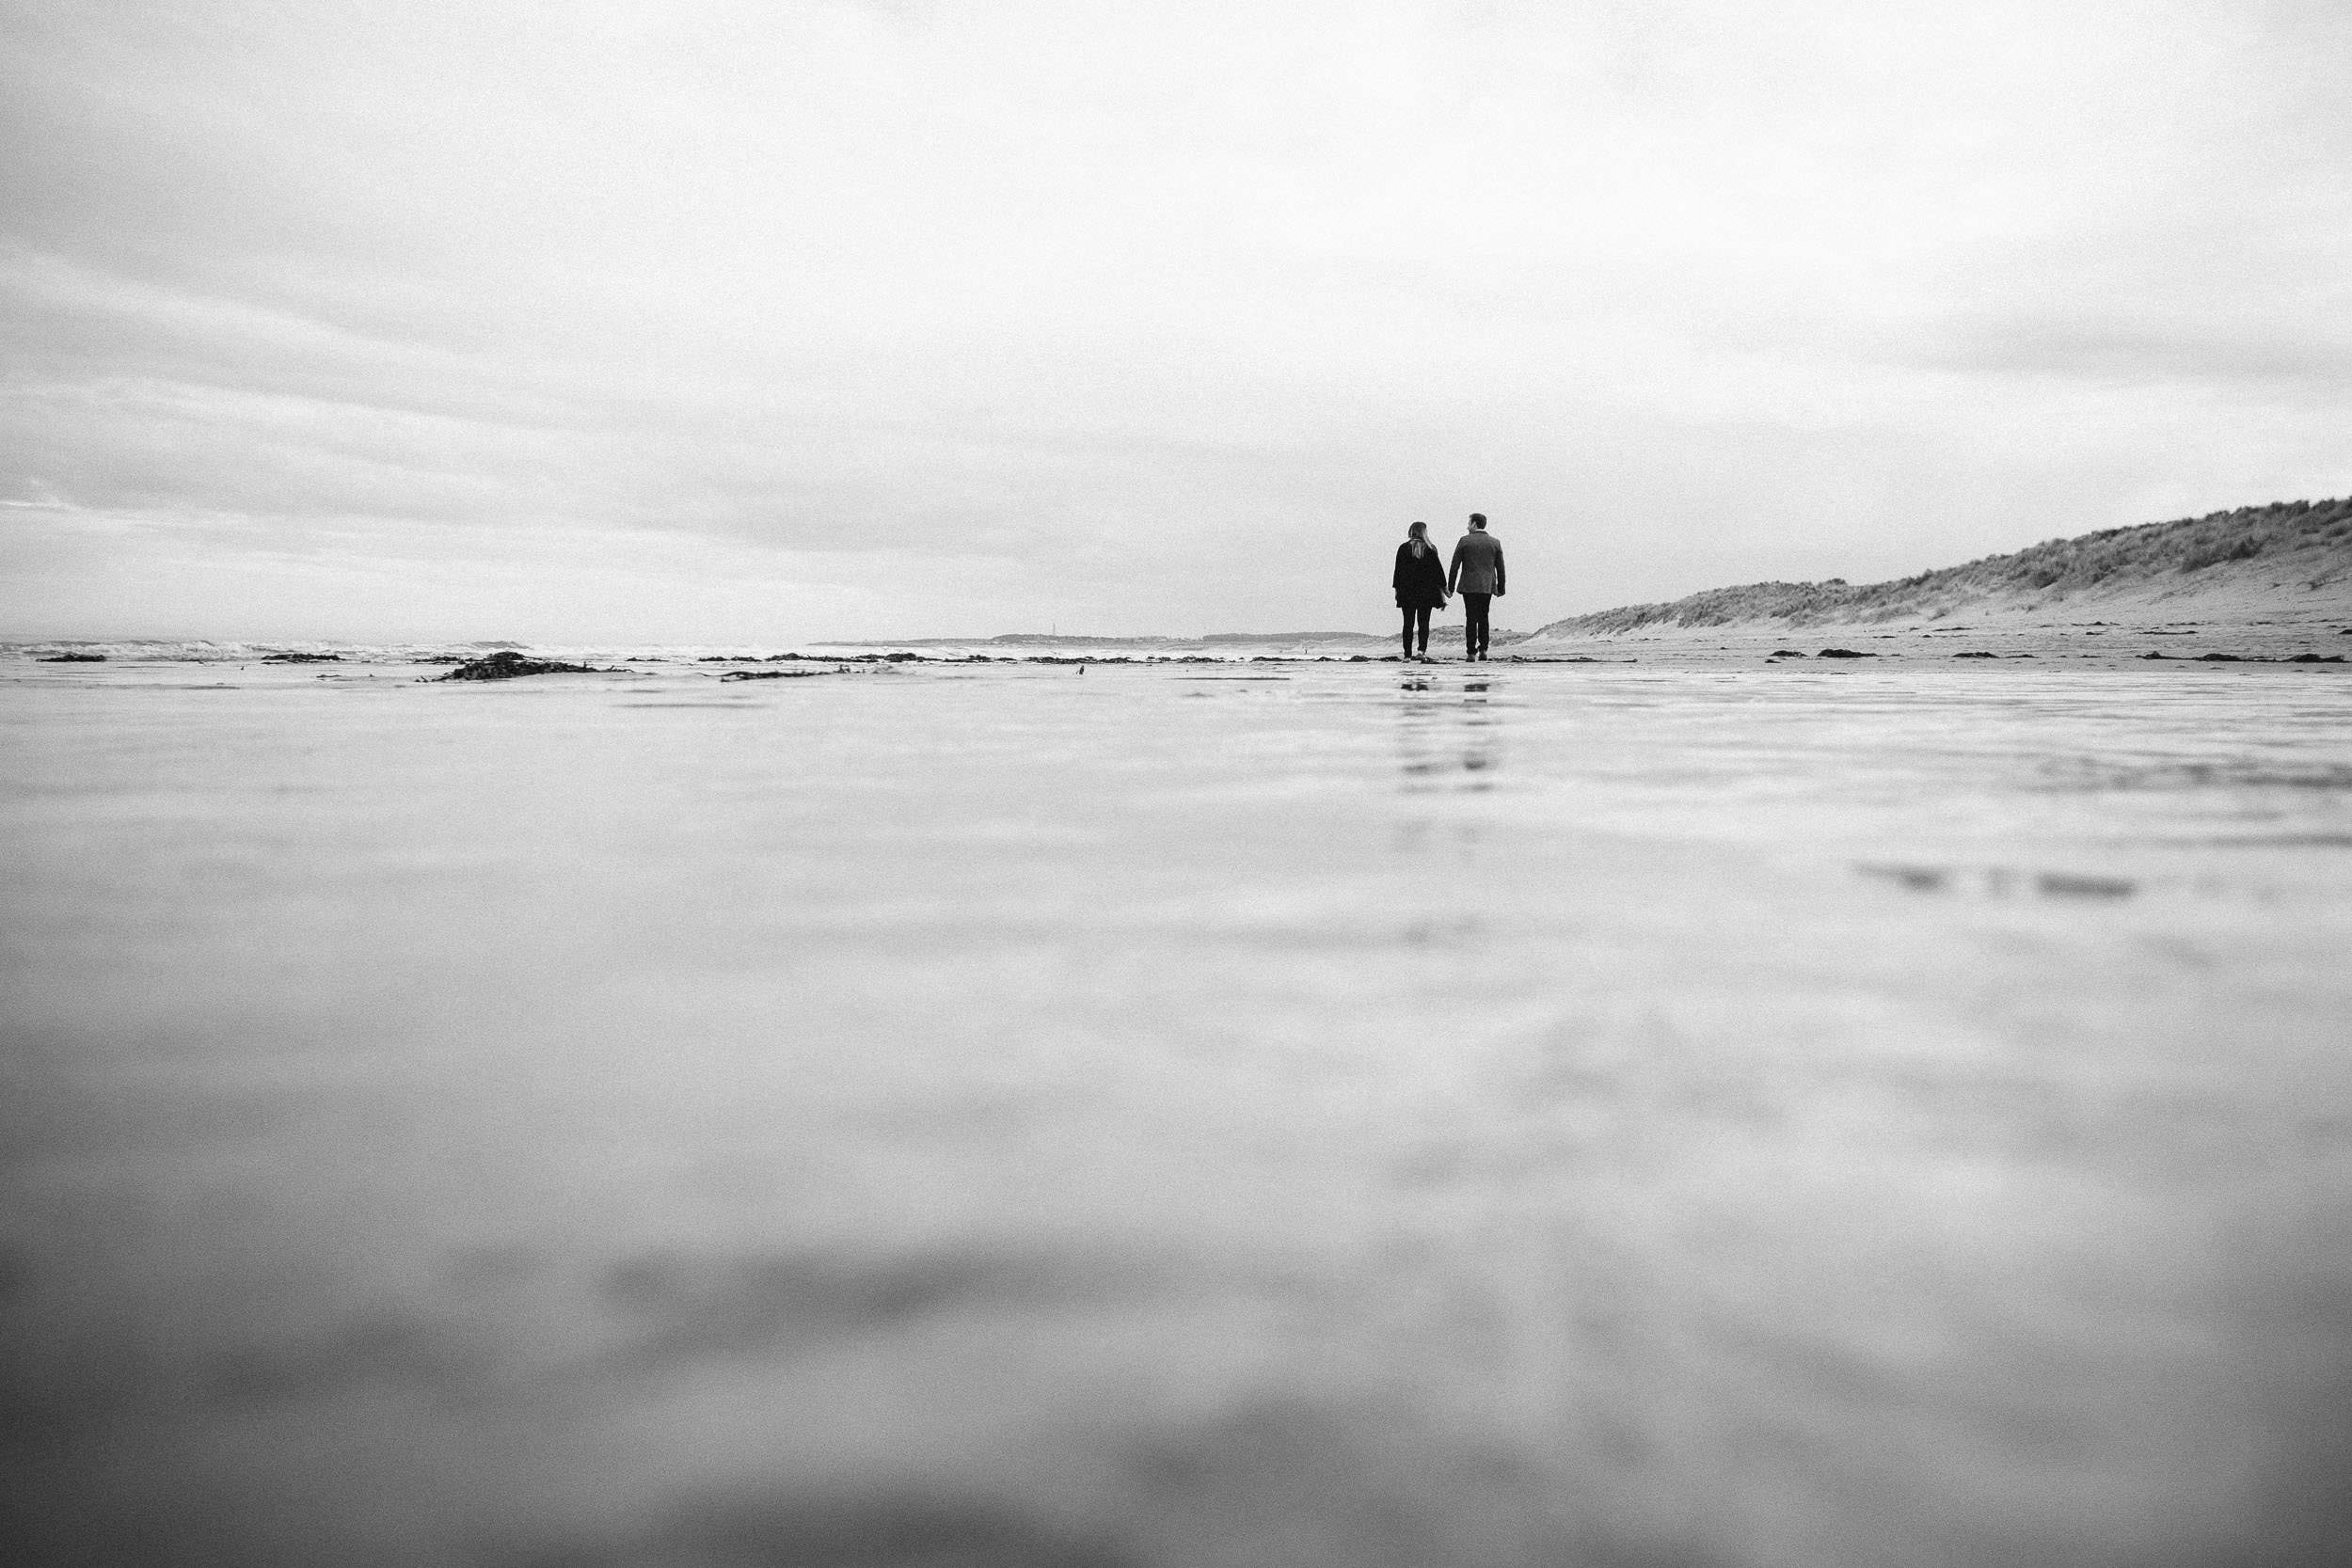 A black and white photo of a couple in the distance walking hand in hand on a beach